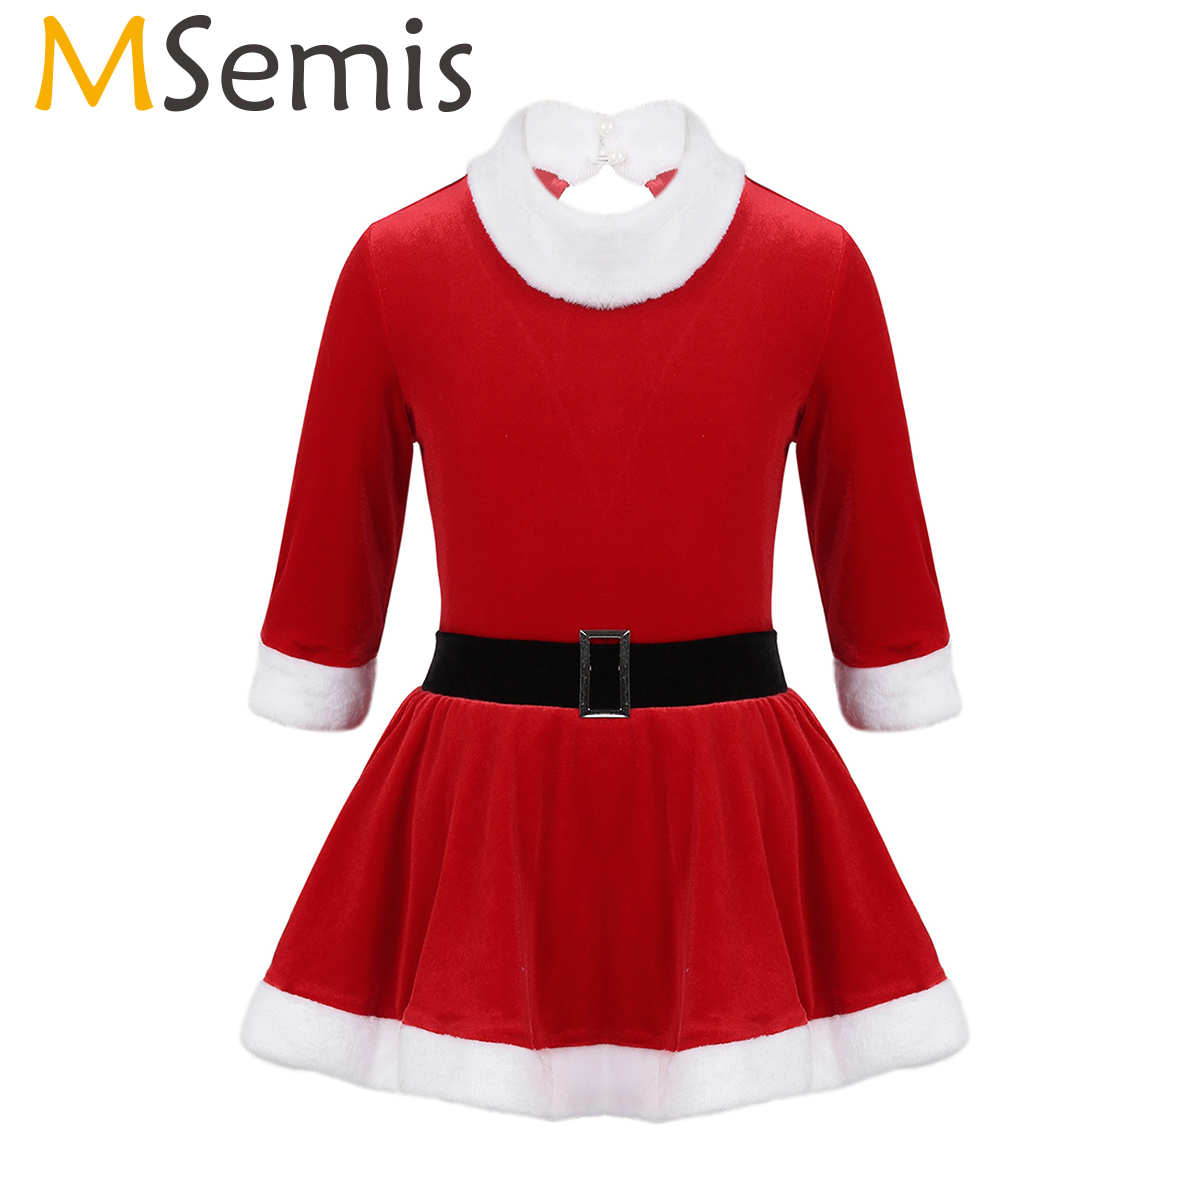 MSemis Kids Toddler Girls Christmas Clothes Figure Ice Skating Dress Long Sleeve Ballet Leotard Mrs Claus Santa Dance Costume